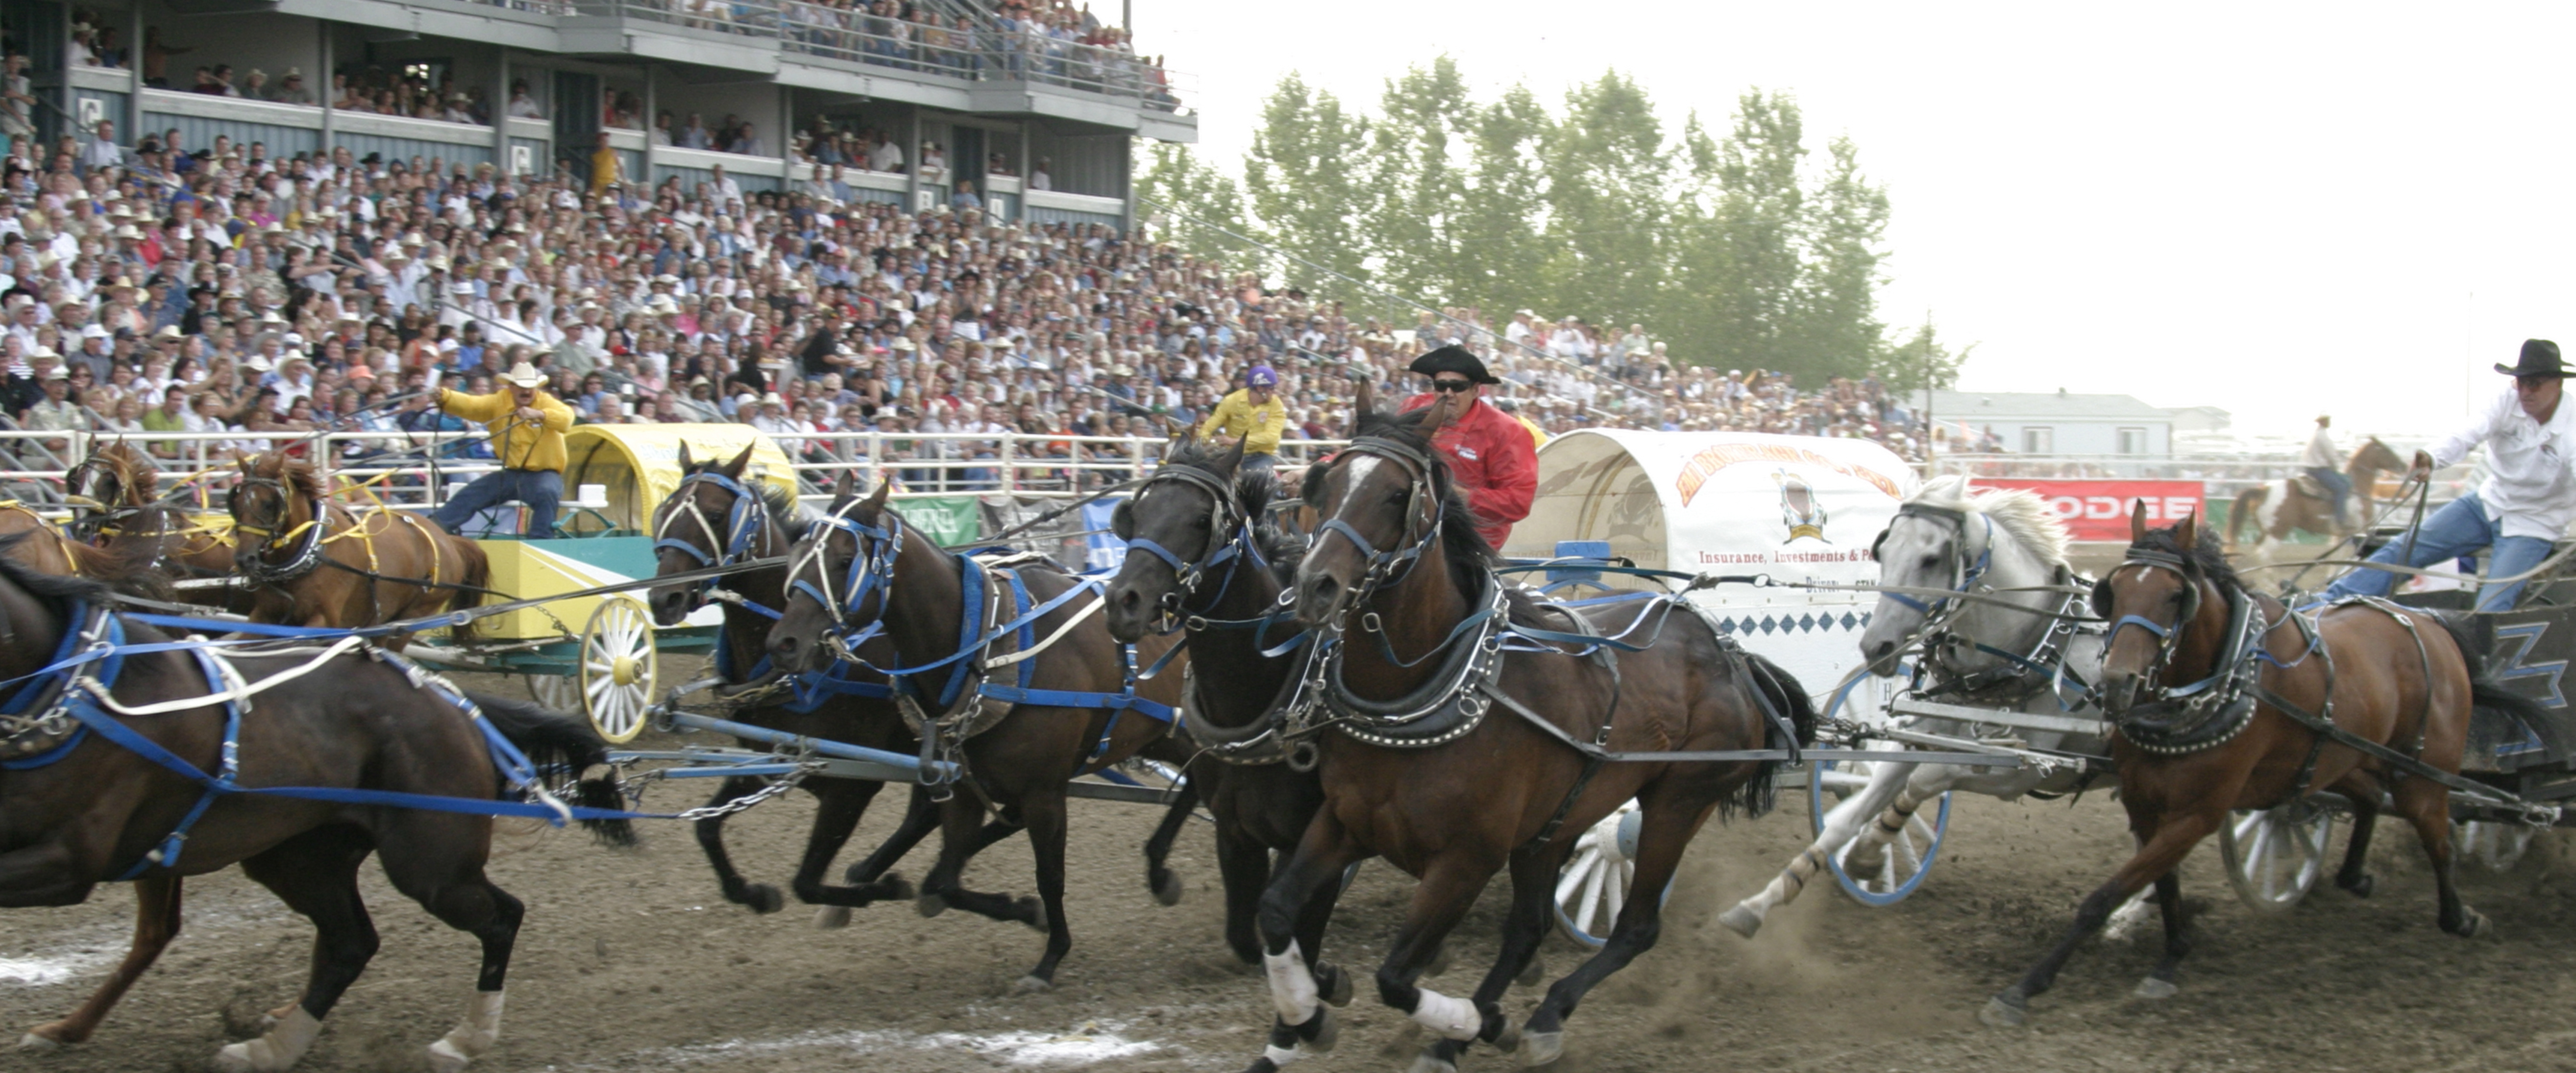 chuckwagons race at the Strathmore Stampede